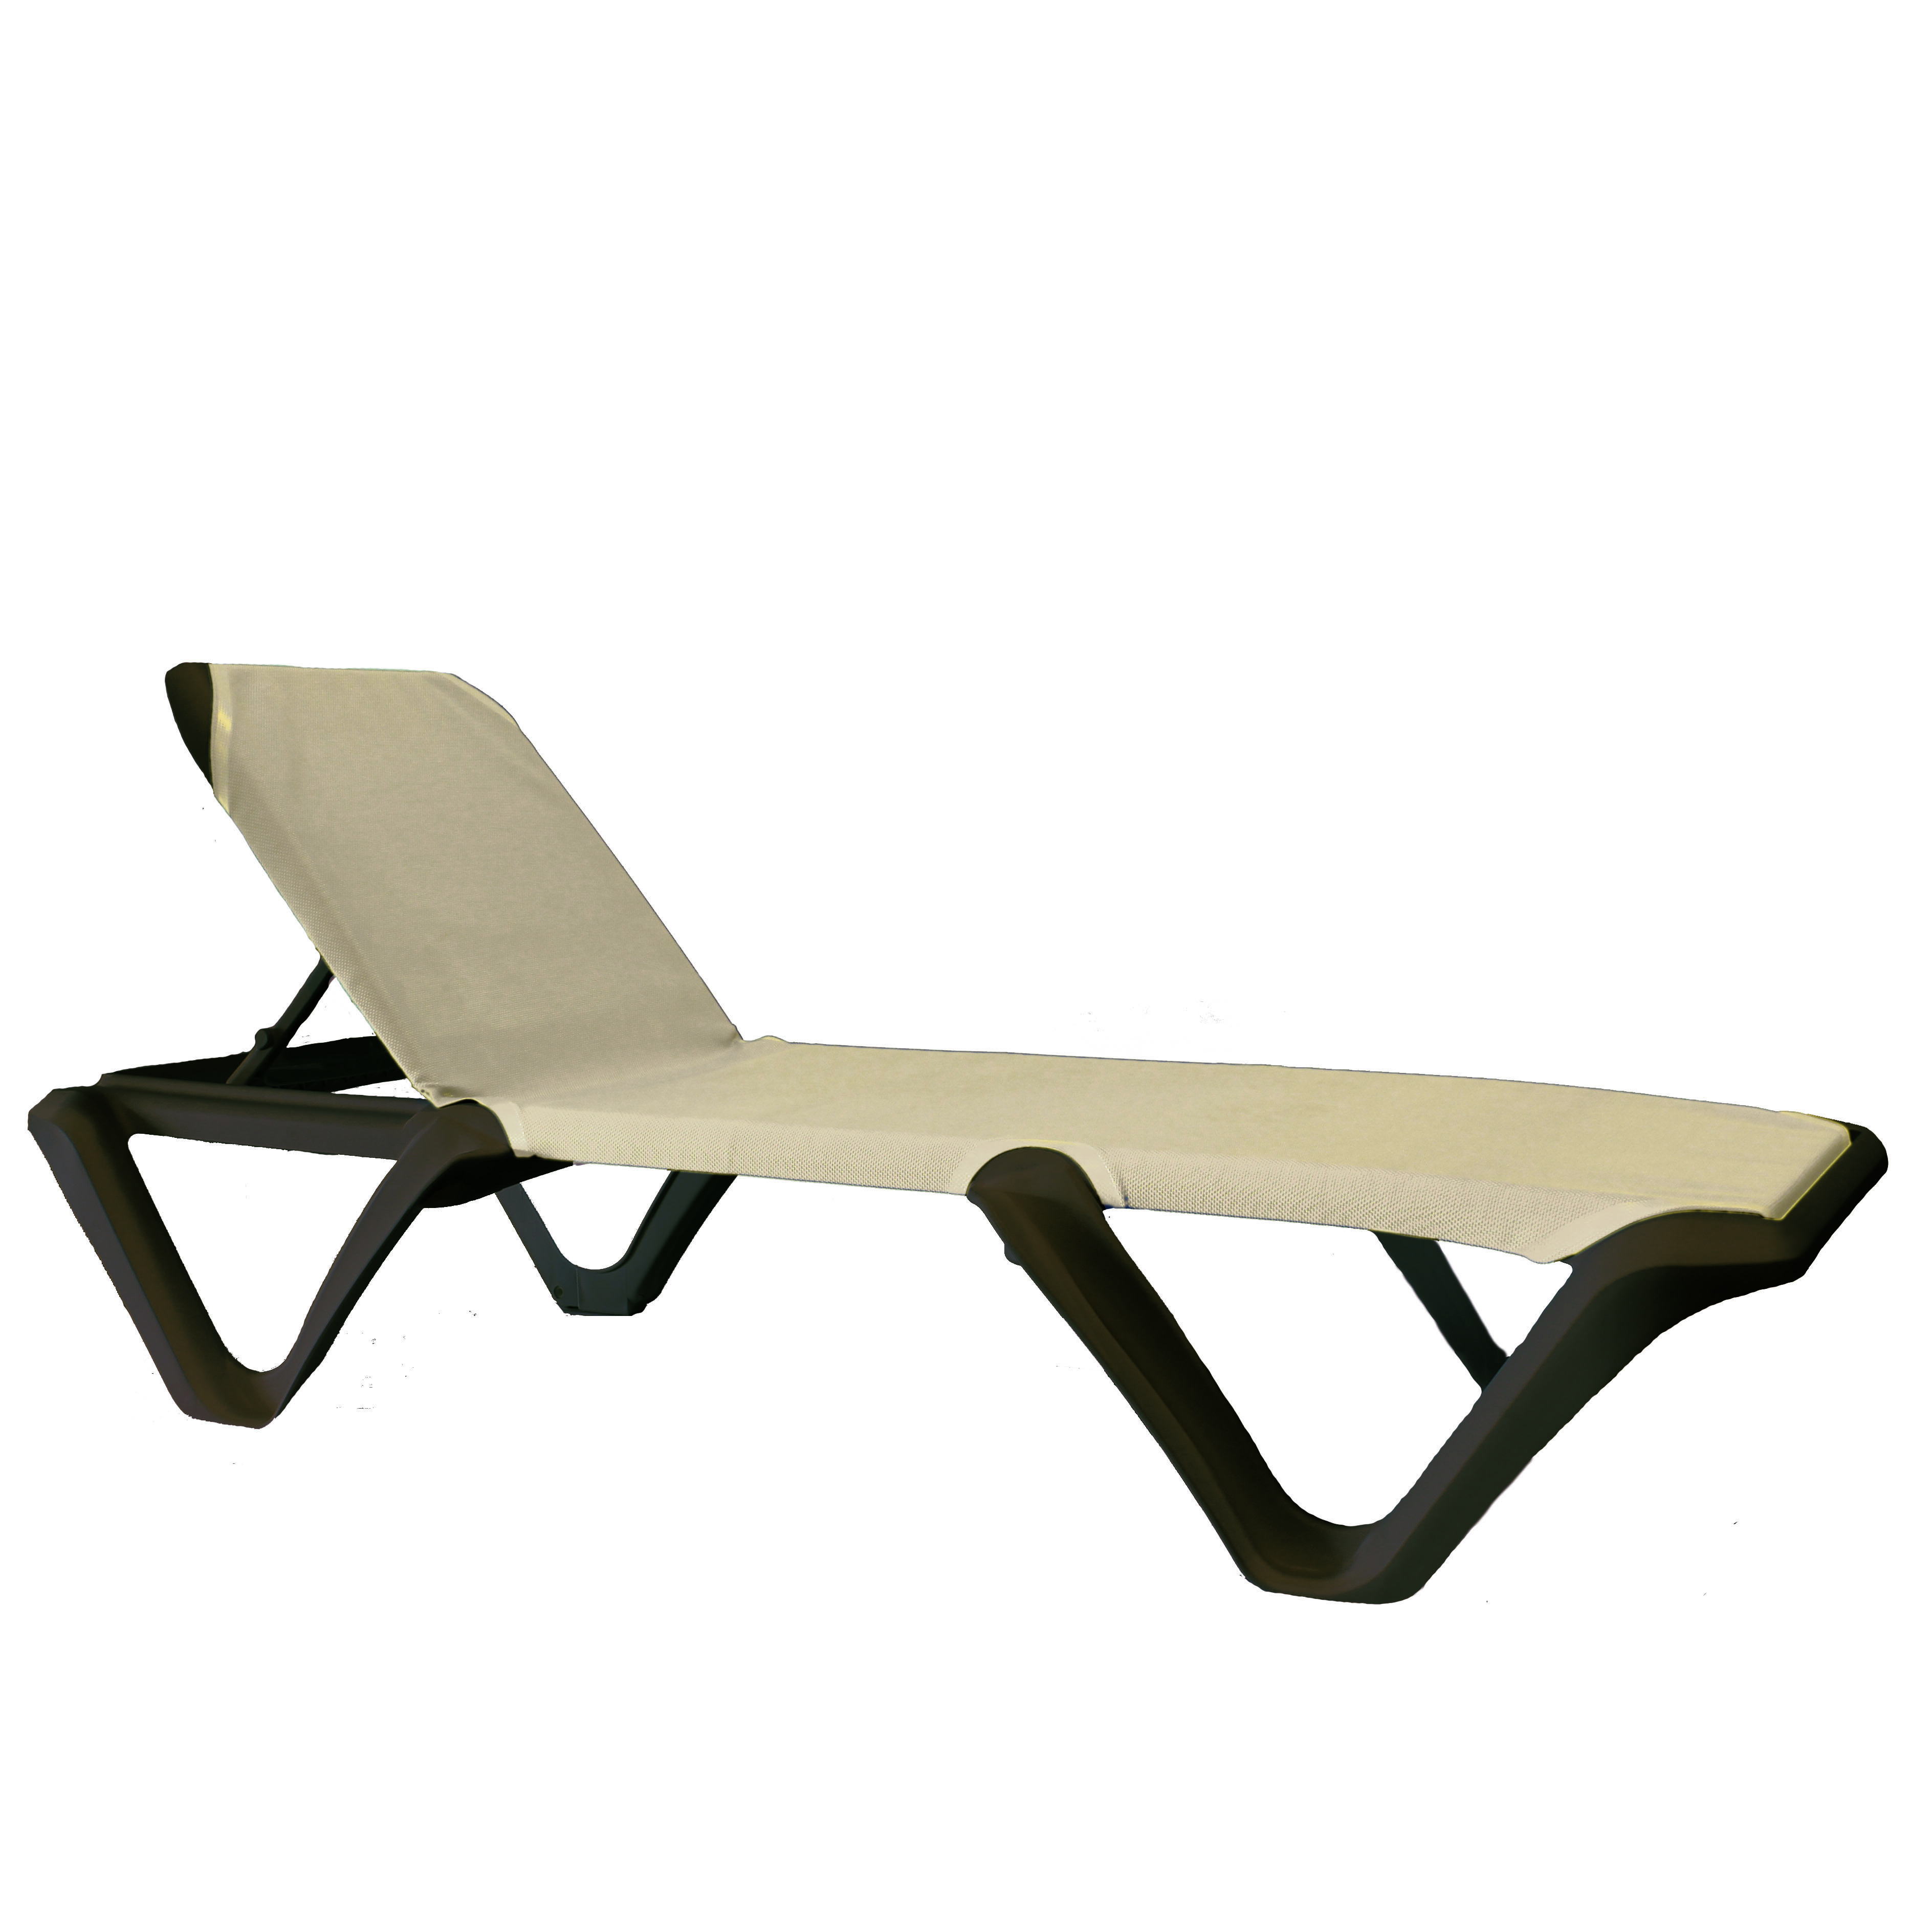 Grosfillex 99902137 chaise, outdoor